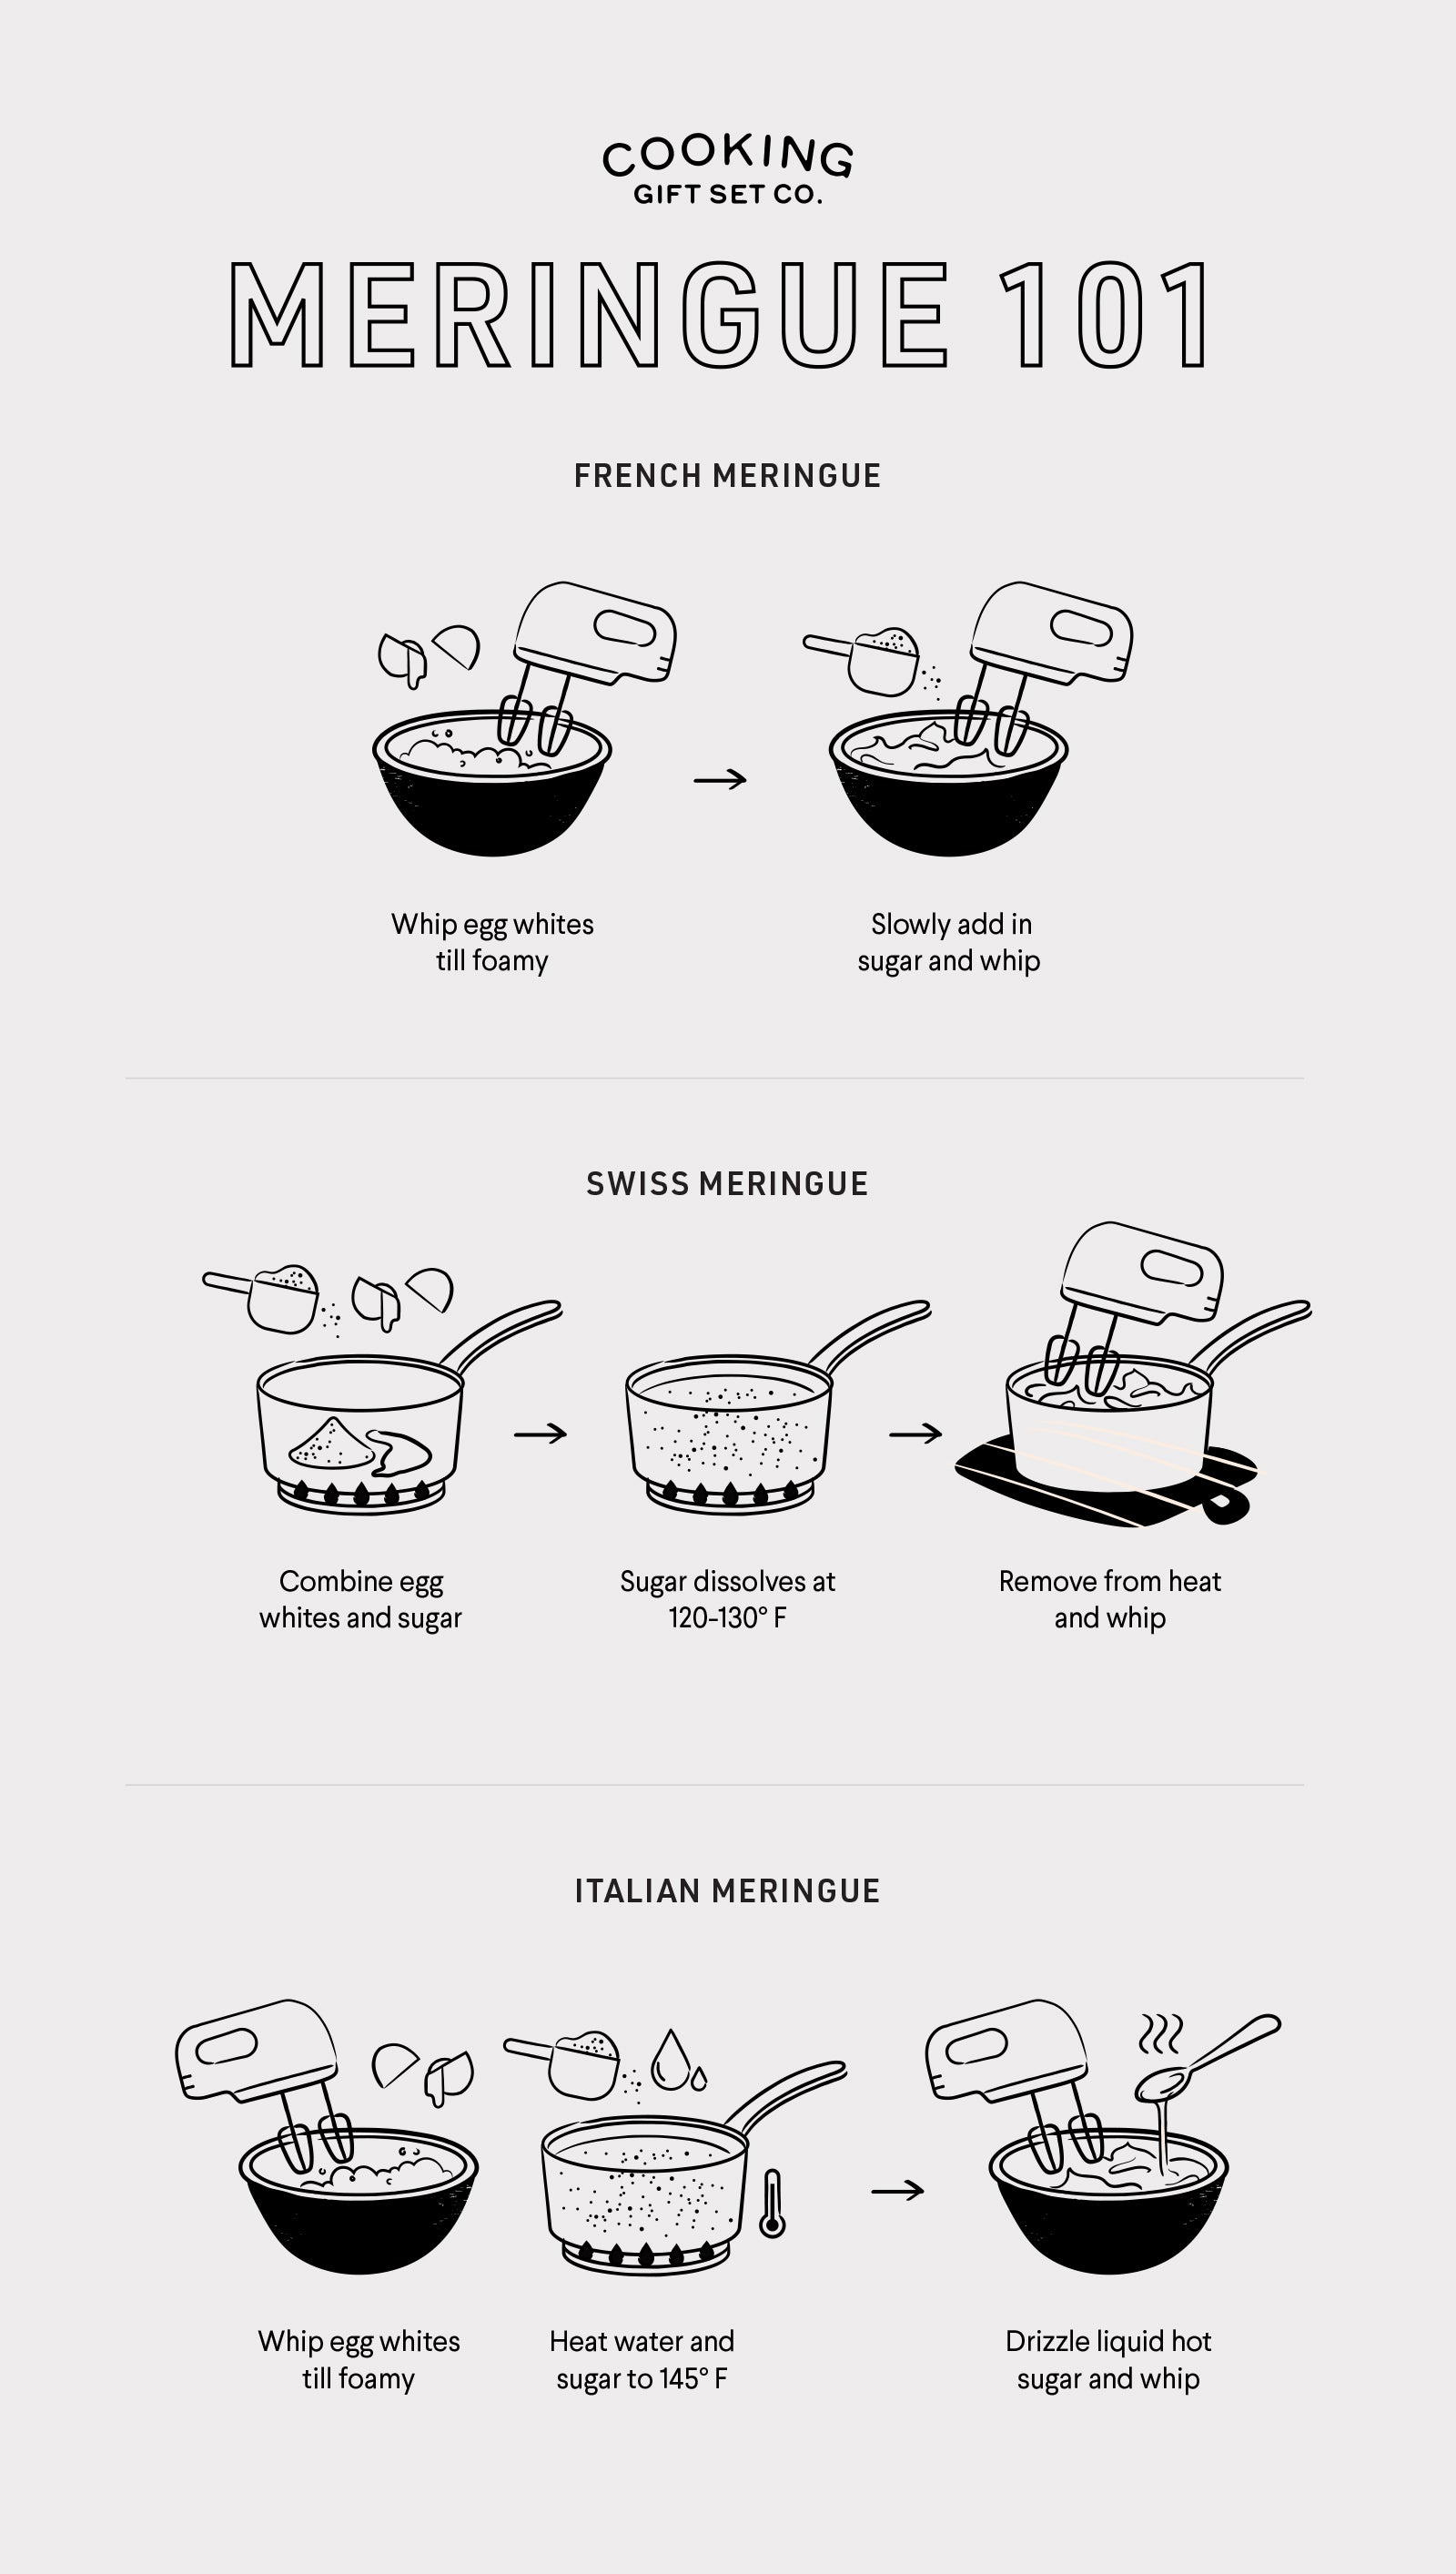 Infographic showing the difference between the three meringues: french, swiss, and italian meringue